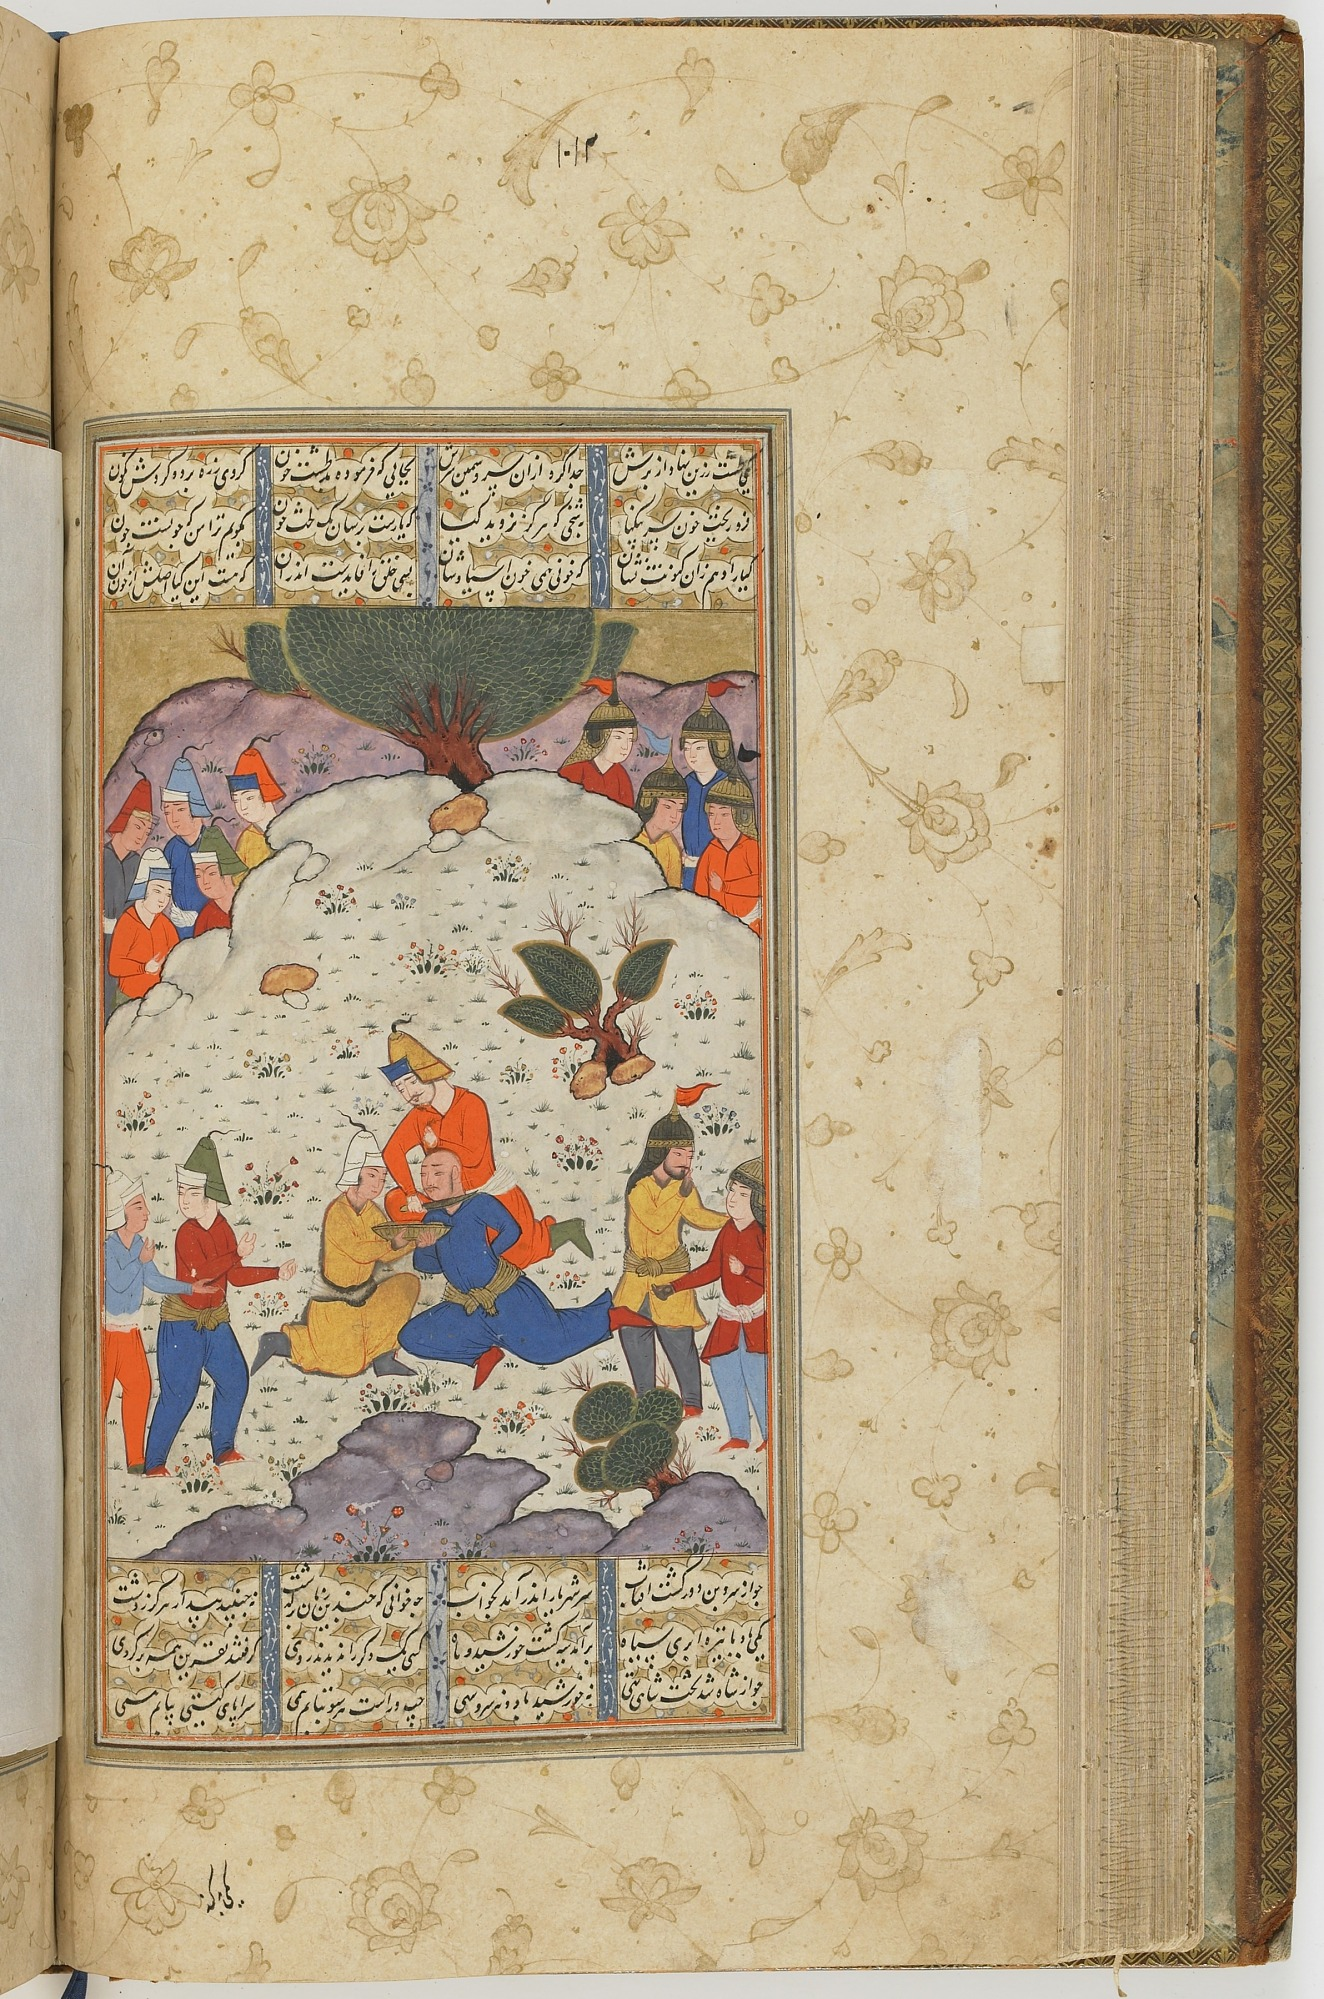 folio 113 verso: The Shahnama (Book of kings) by Firdausi (d. 1020)